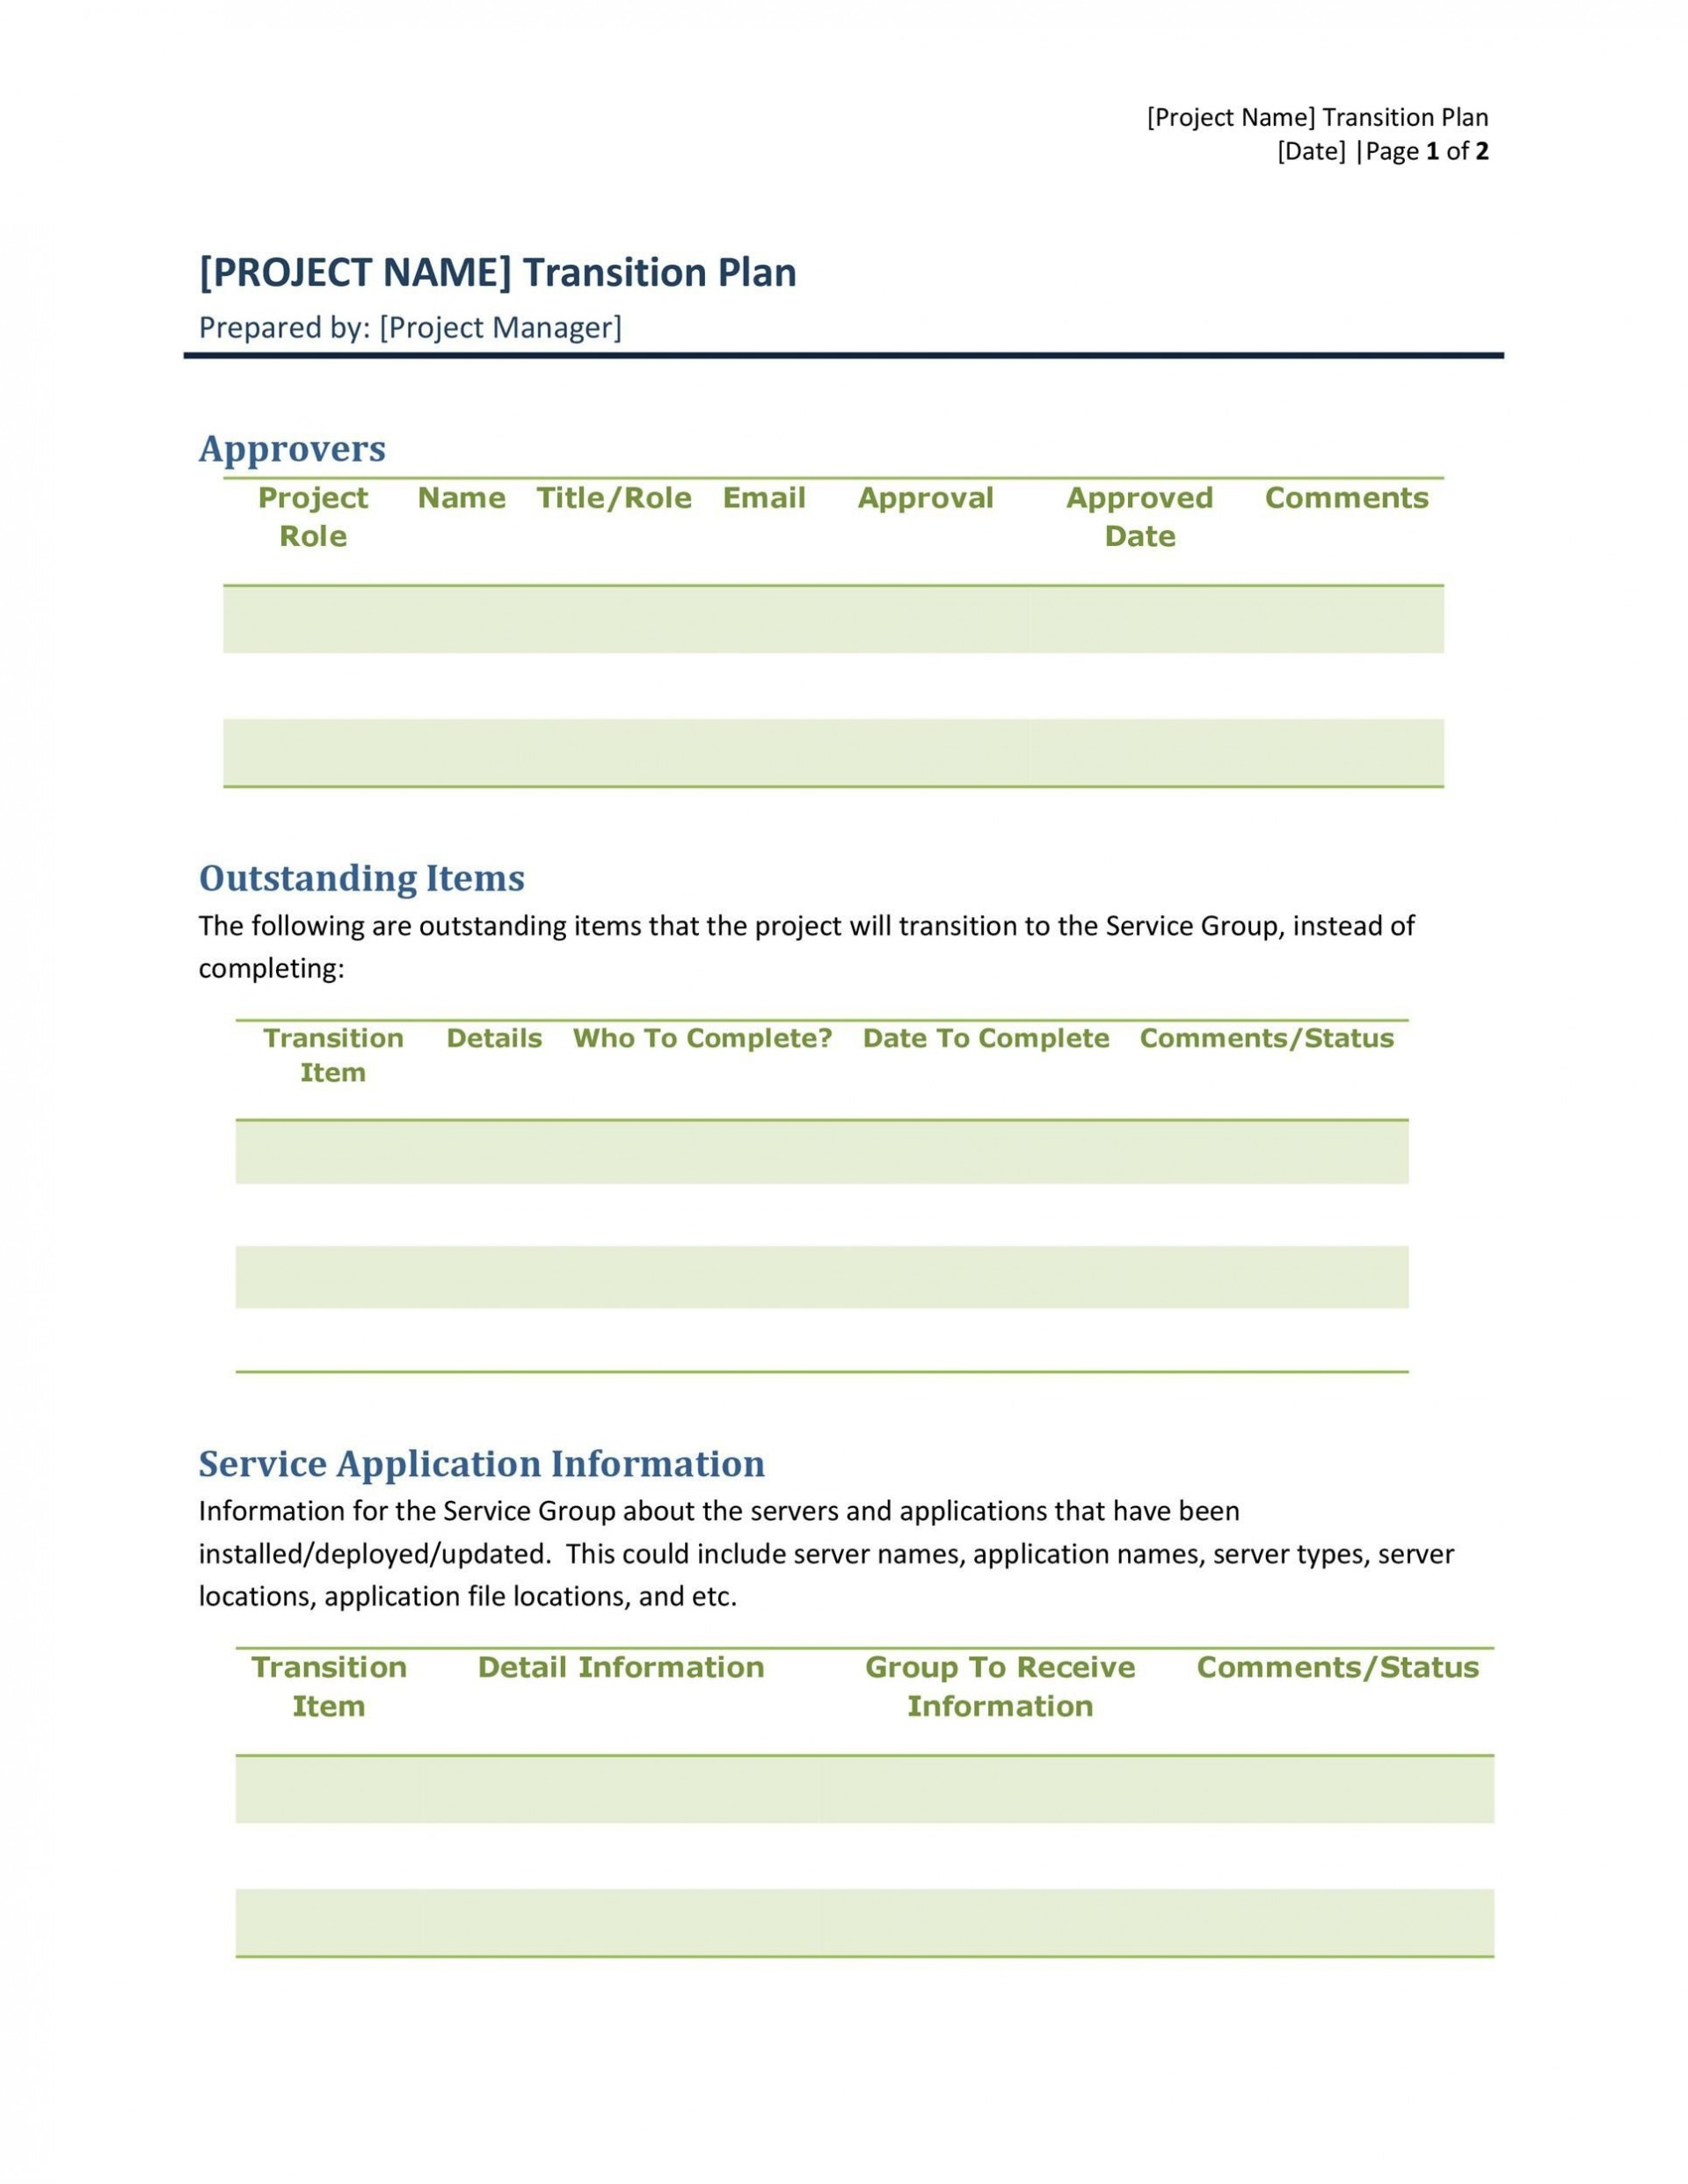 002 Phenomenal Project Transition Out Plan Template Image  Xl Excel Download1920